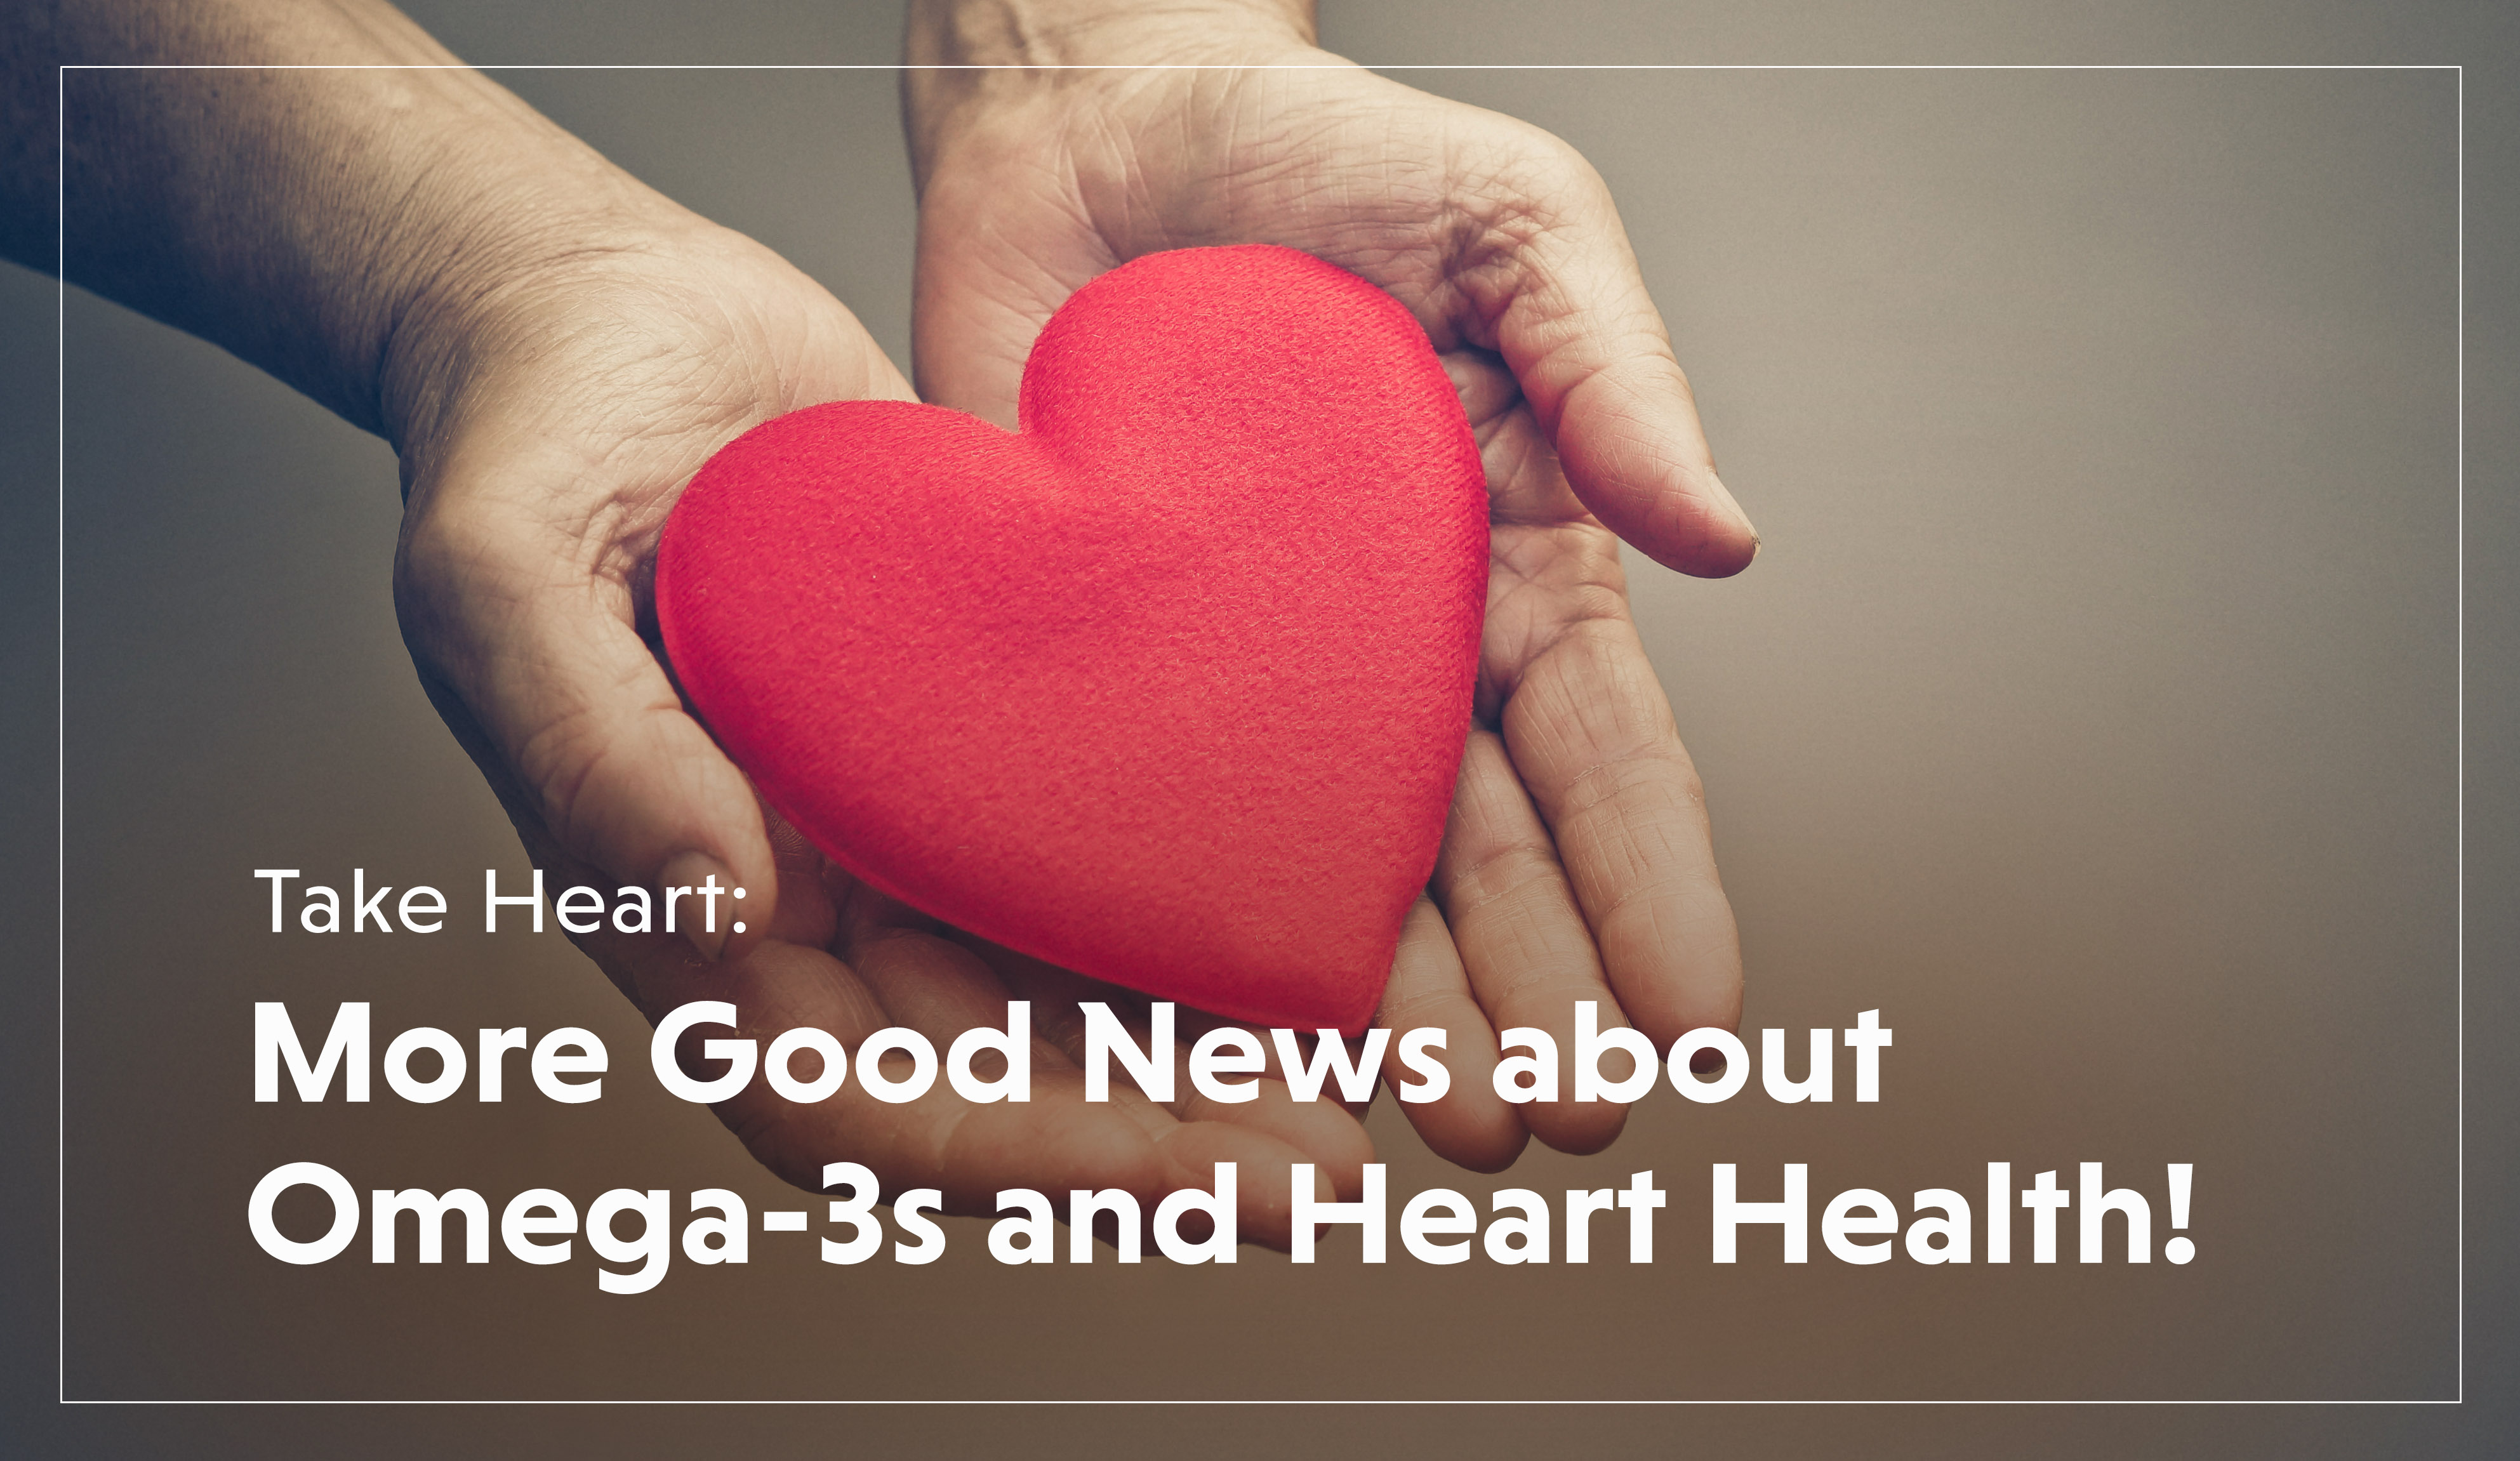 More Good News About Omega-3s and Heart Health-1